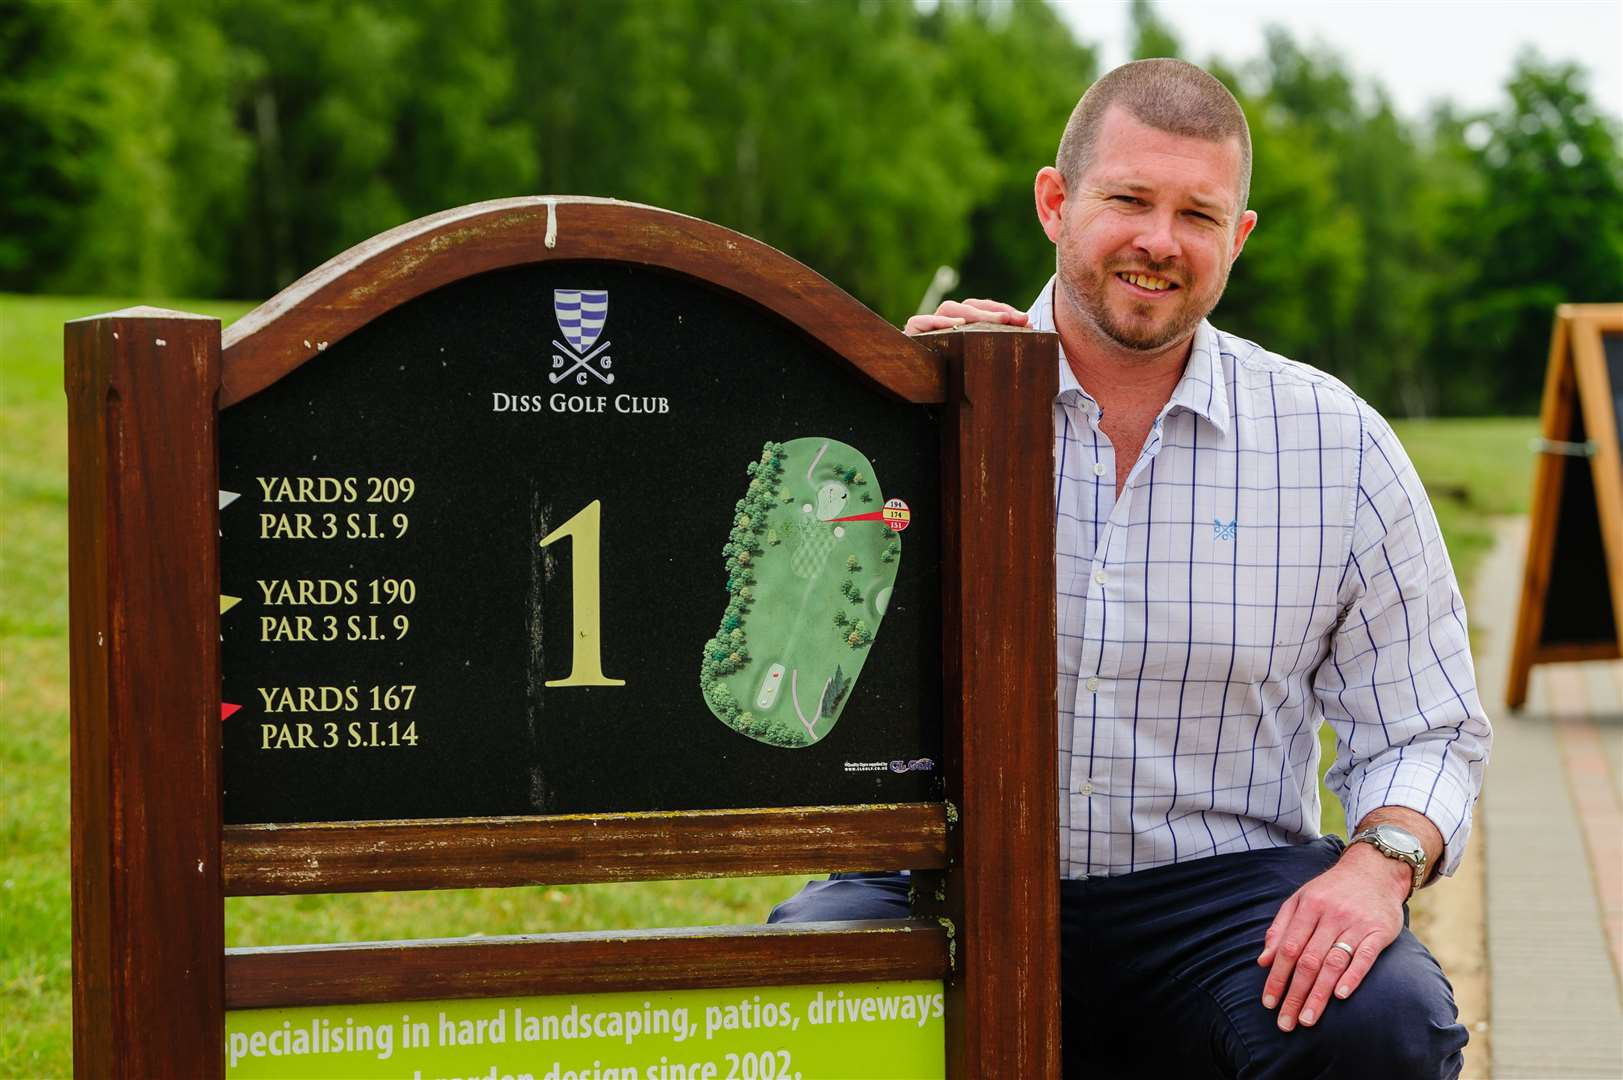 Diss, Norfolk, 20/05/2020..Diss Golf Club which was reopened to it's members on the 13th May 2020 after the Covid-19 lockdown was relaxed by the Government. Pictured is general manager Steven Peet. . .Picture: Mark Bullimore Photography. (34966874)